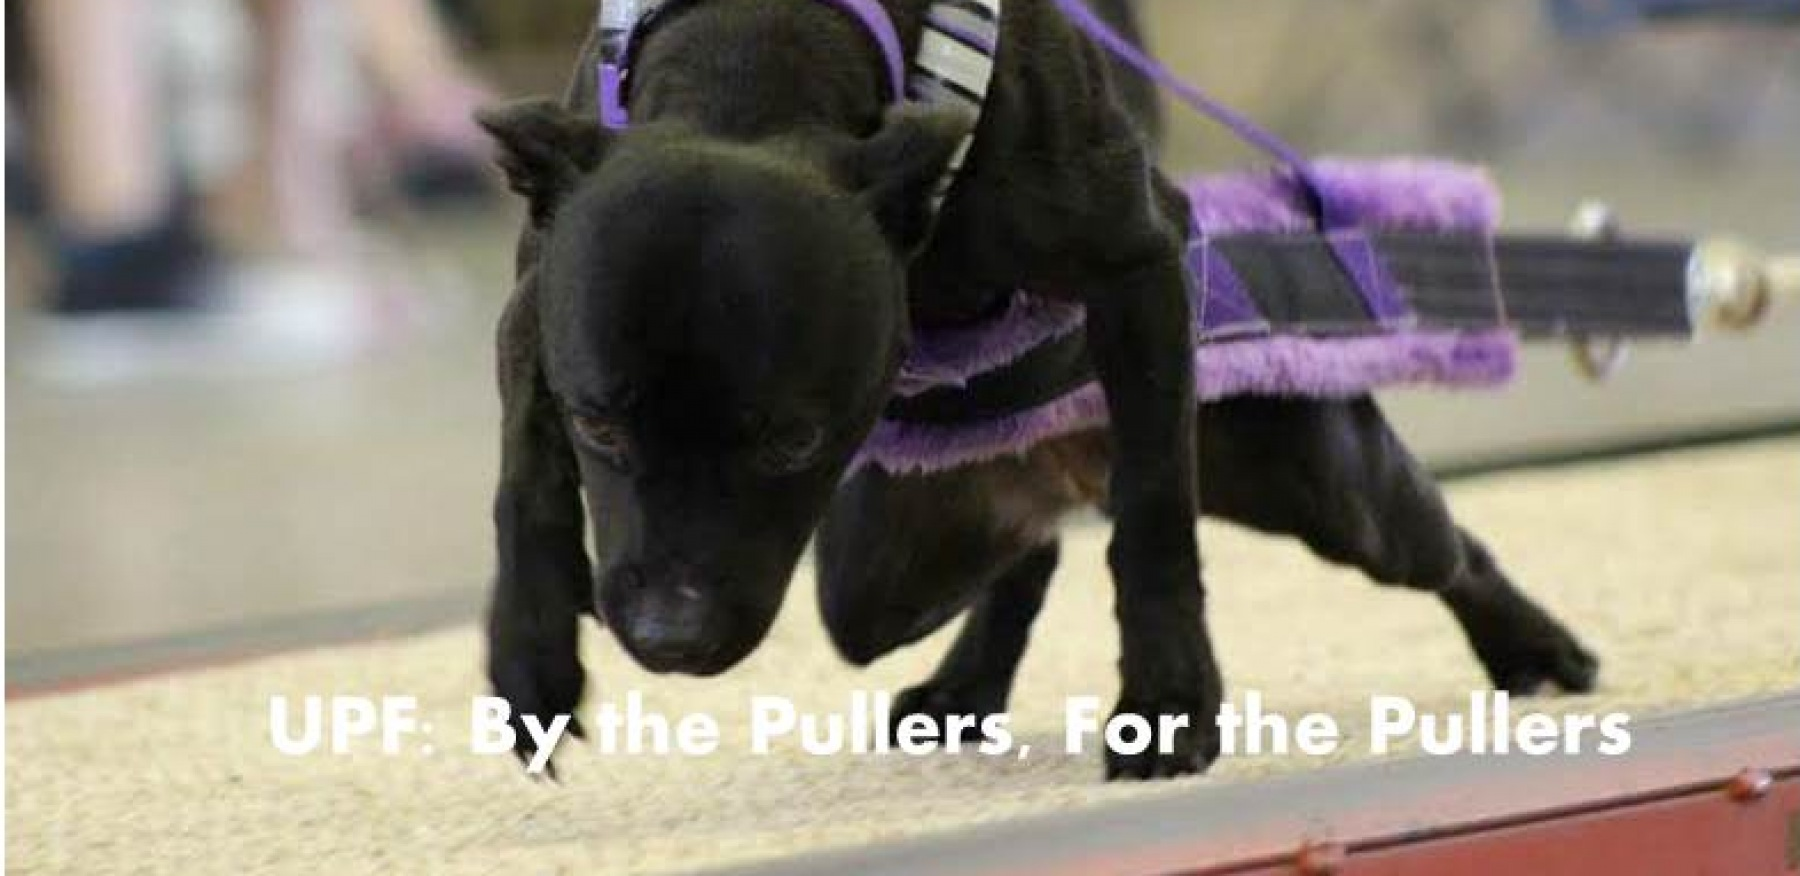 UPF: By The Pullers, For The Pullers